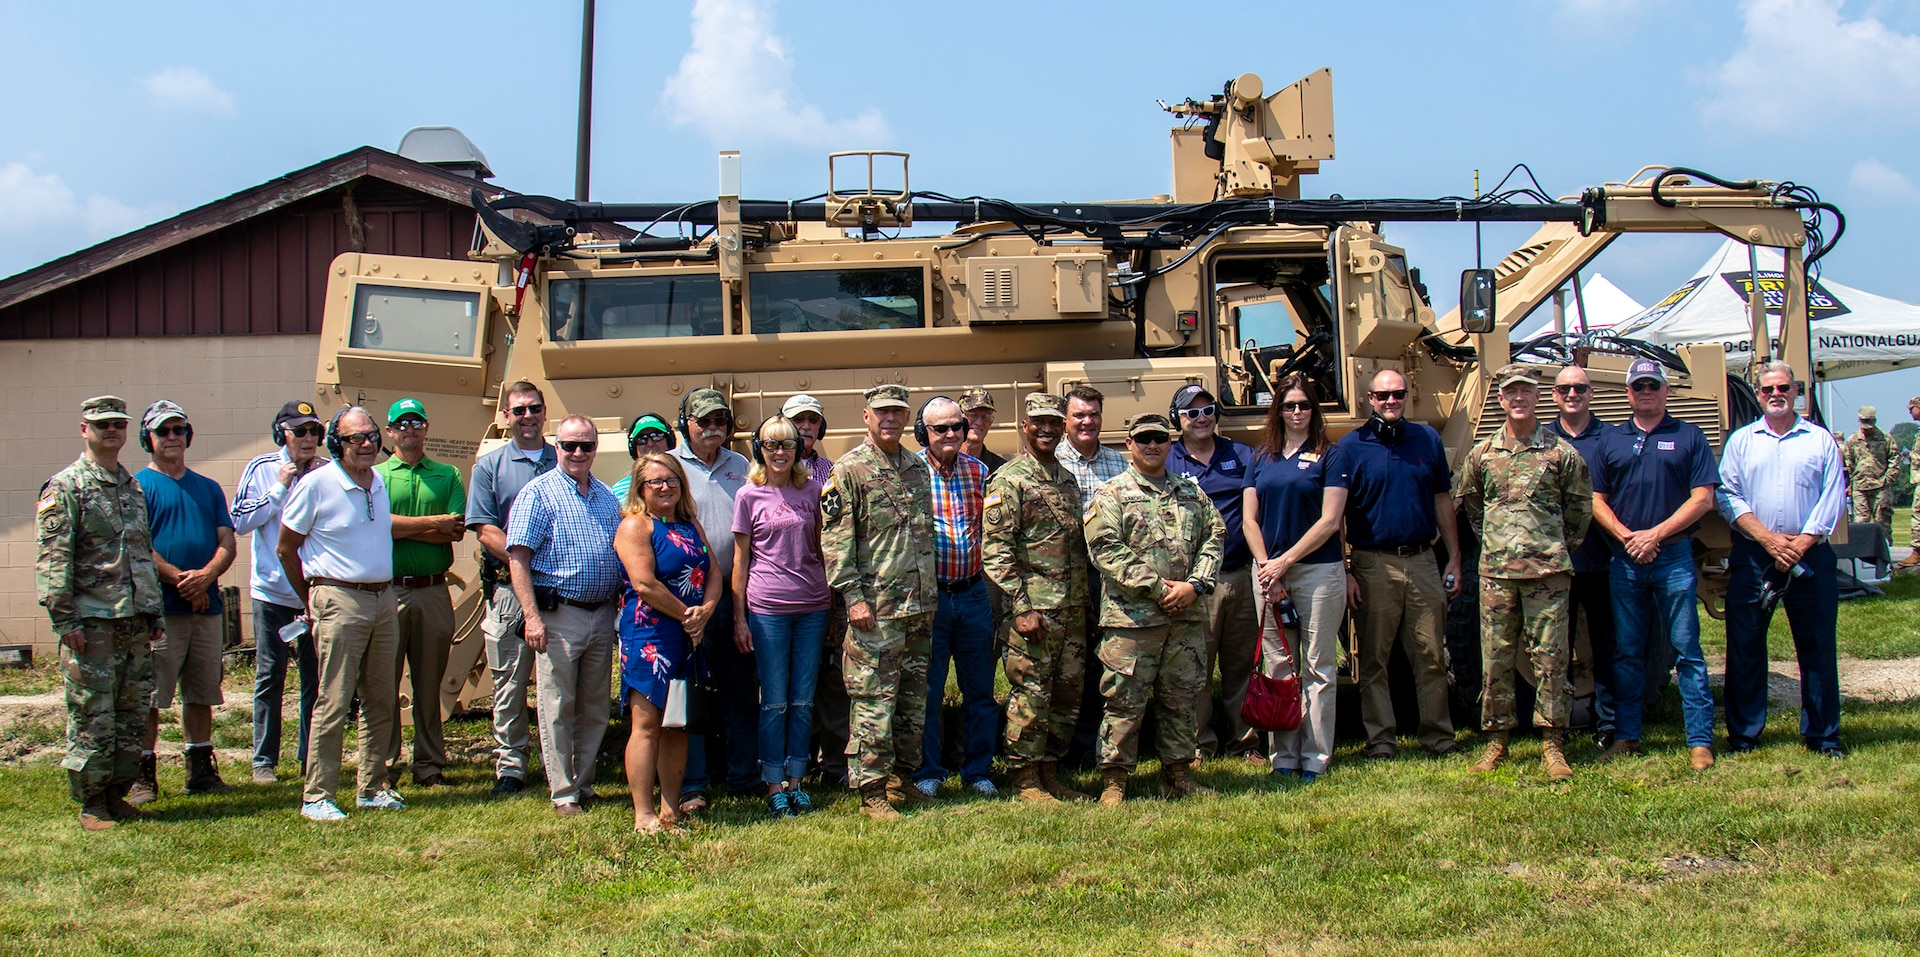 LaSalle County, Illinois, leaders joined leaders of the Illinois National Guard for the official dedication of the Automated Record Fire Range at the Marseilles Training Center in Marseilles, Illinois, July 23. The $4.6 million federally-funded project updated the target systems and expanded the ARF by 10 firing positions.